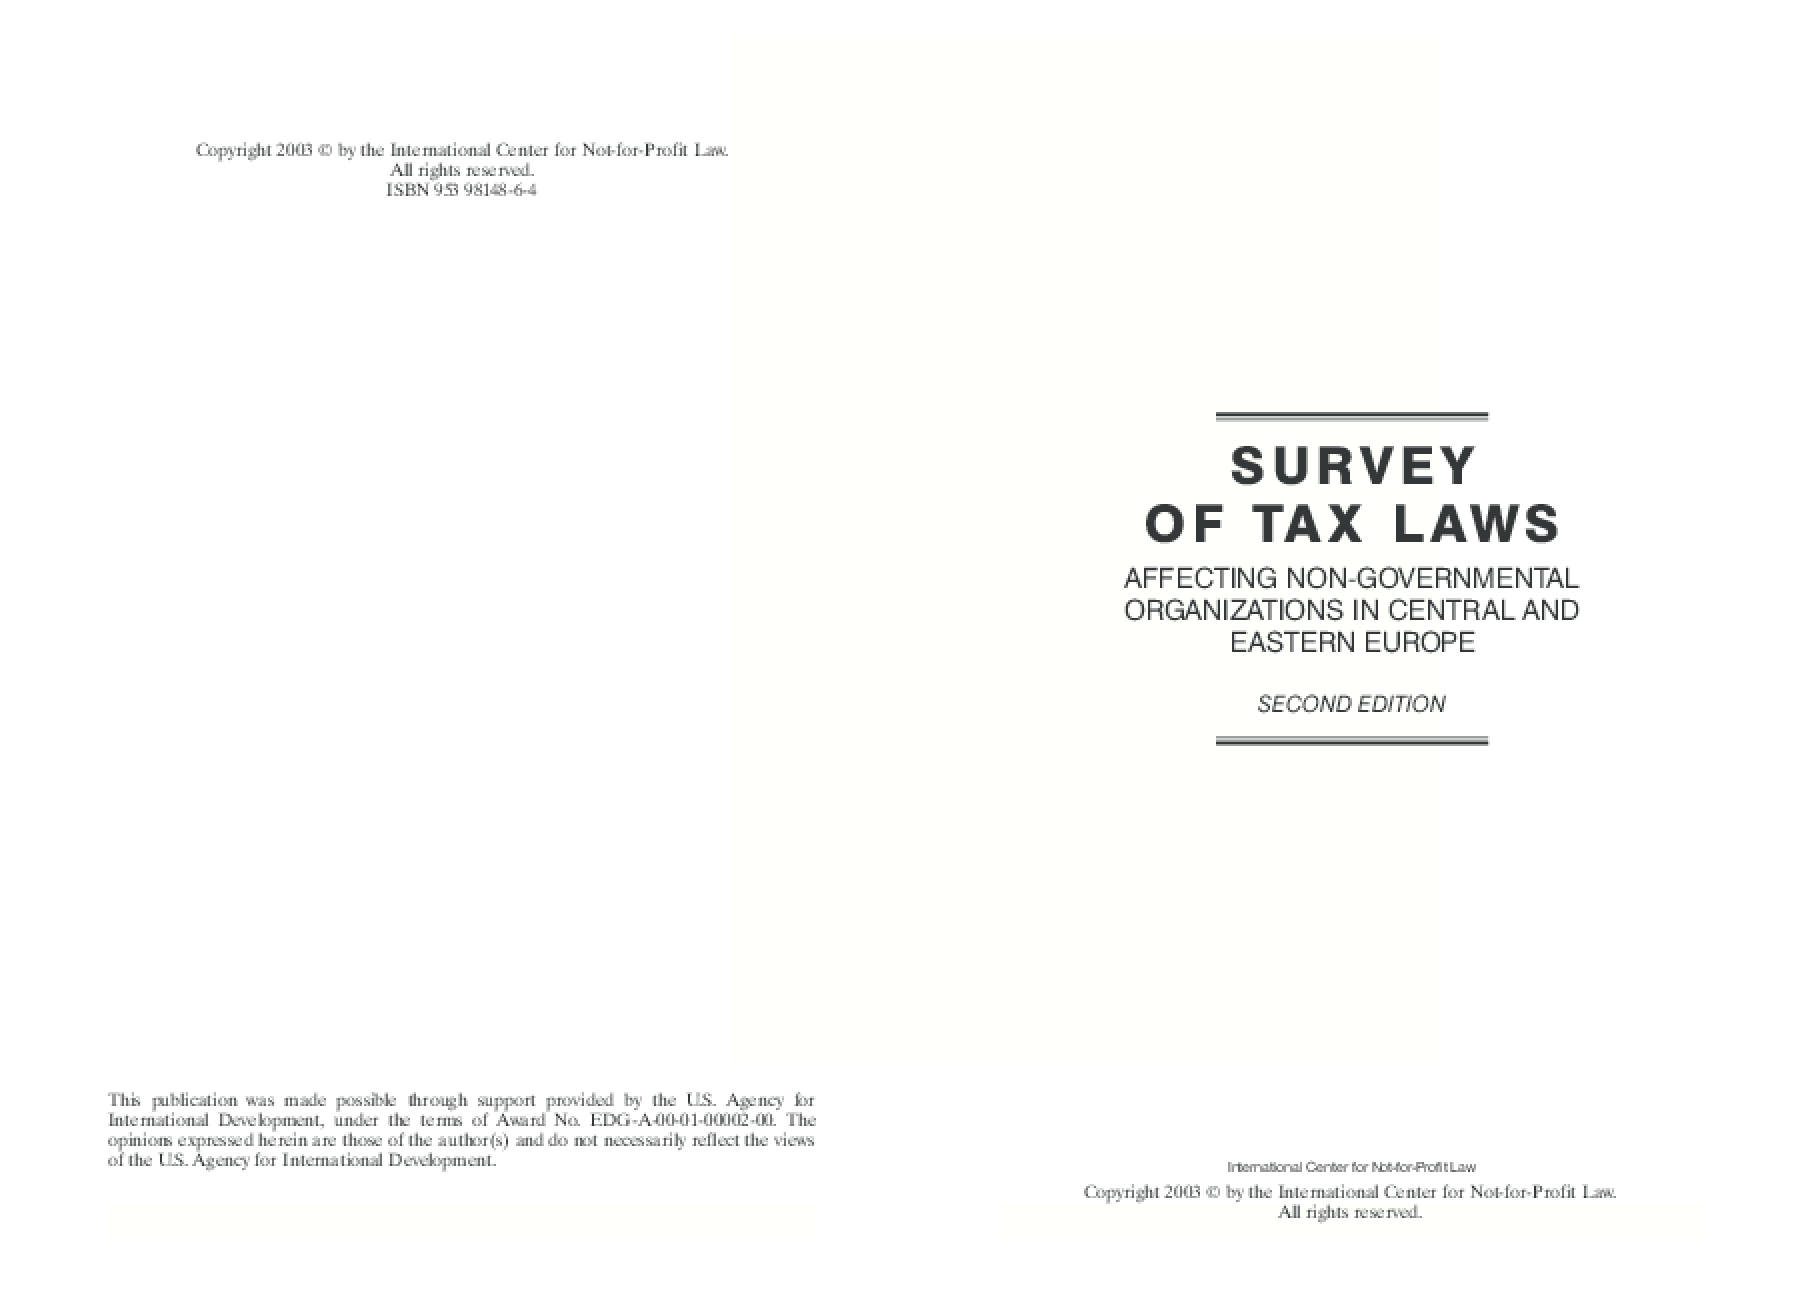 Survey of Tax Laws Affecting Non-governmental Organizations in Central and Eastern Europe